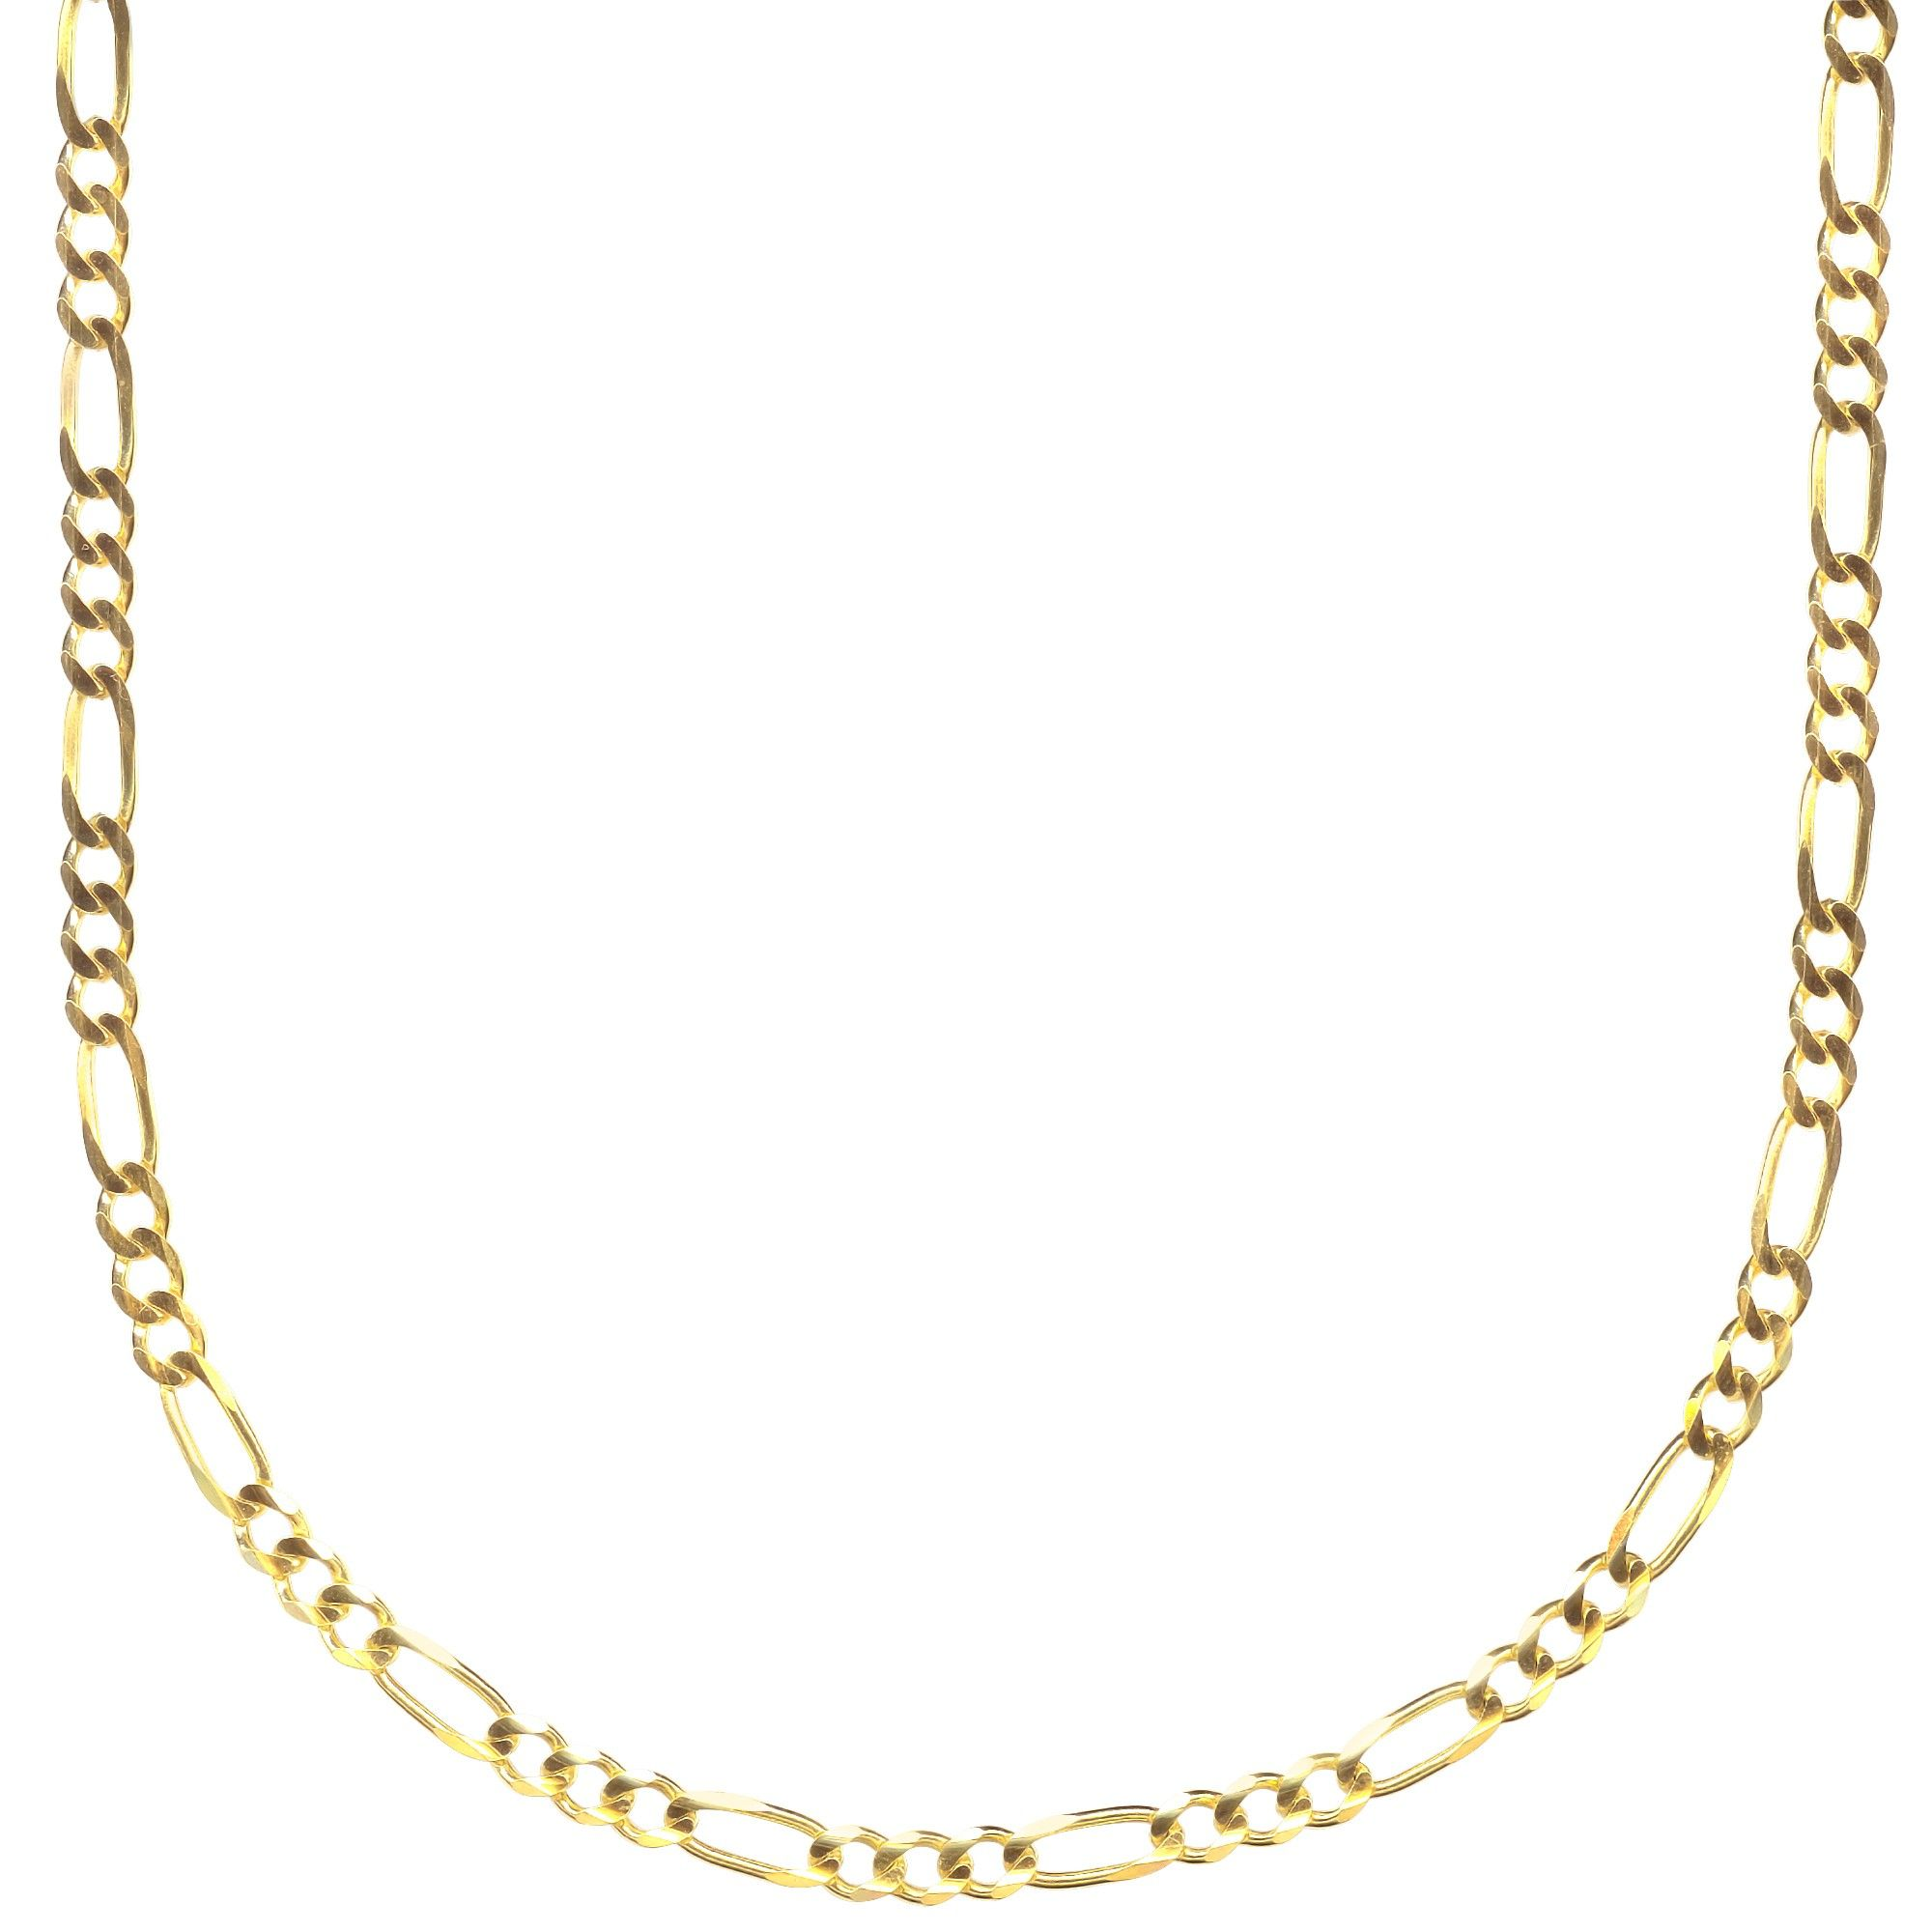 18k Gold Filled Figaro Mens Boys Chain Necklace All Sizes